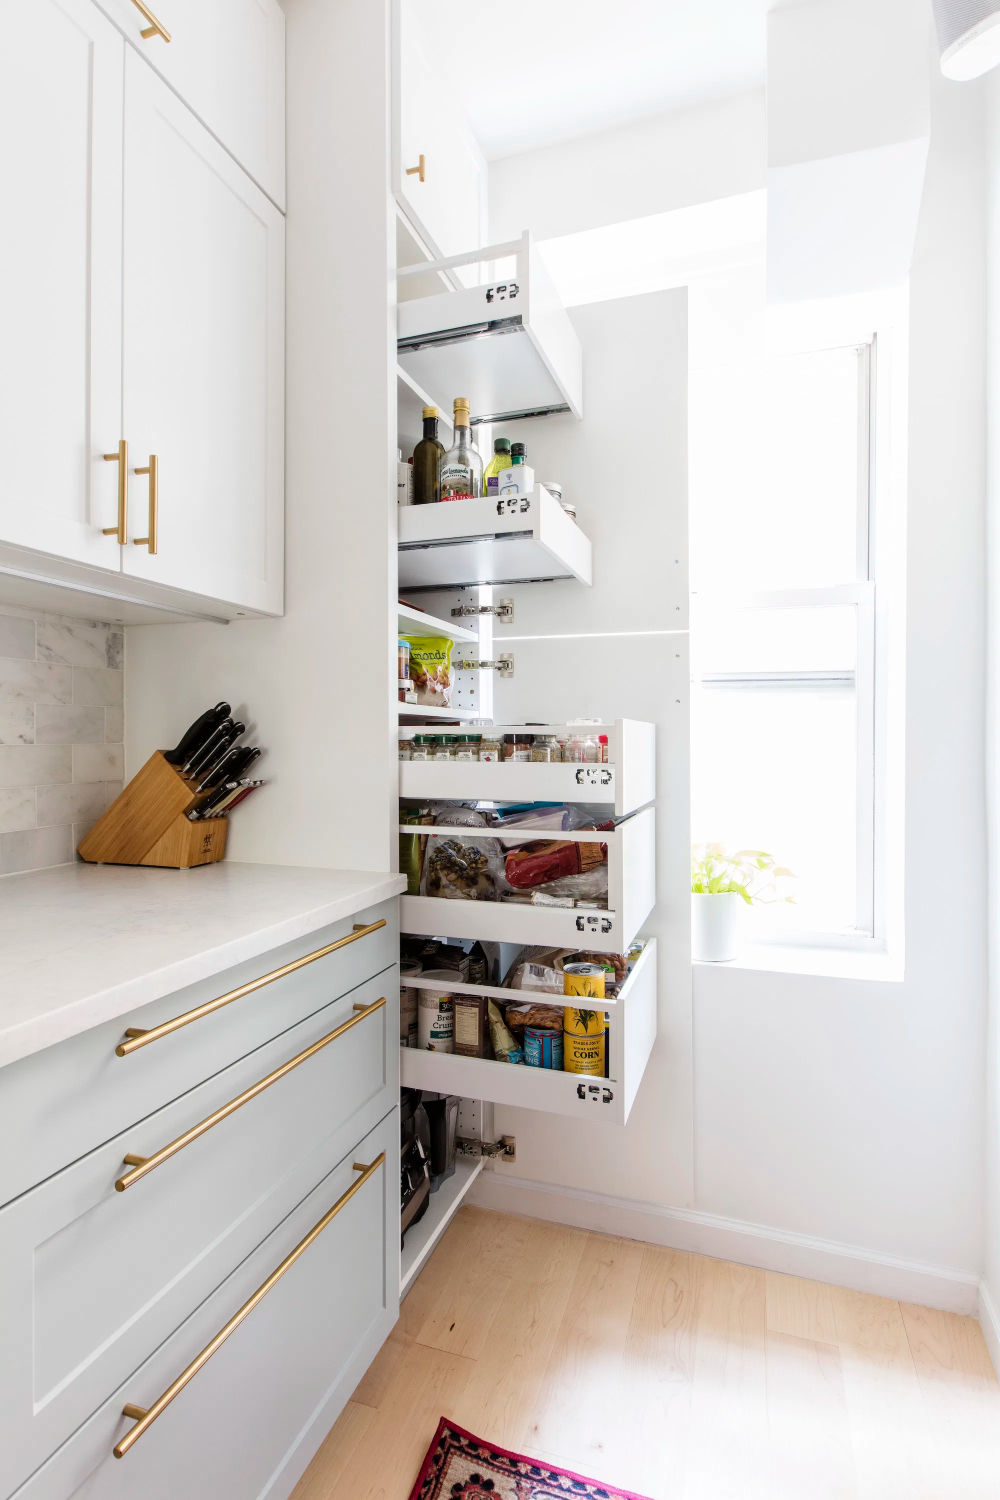 Still a Galley Kitchen—With a Bright Pass-through